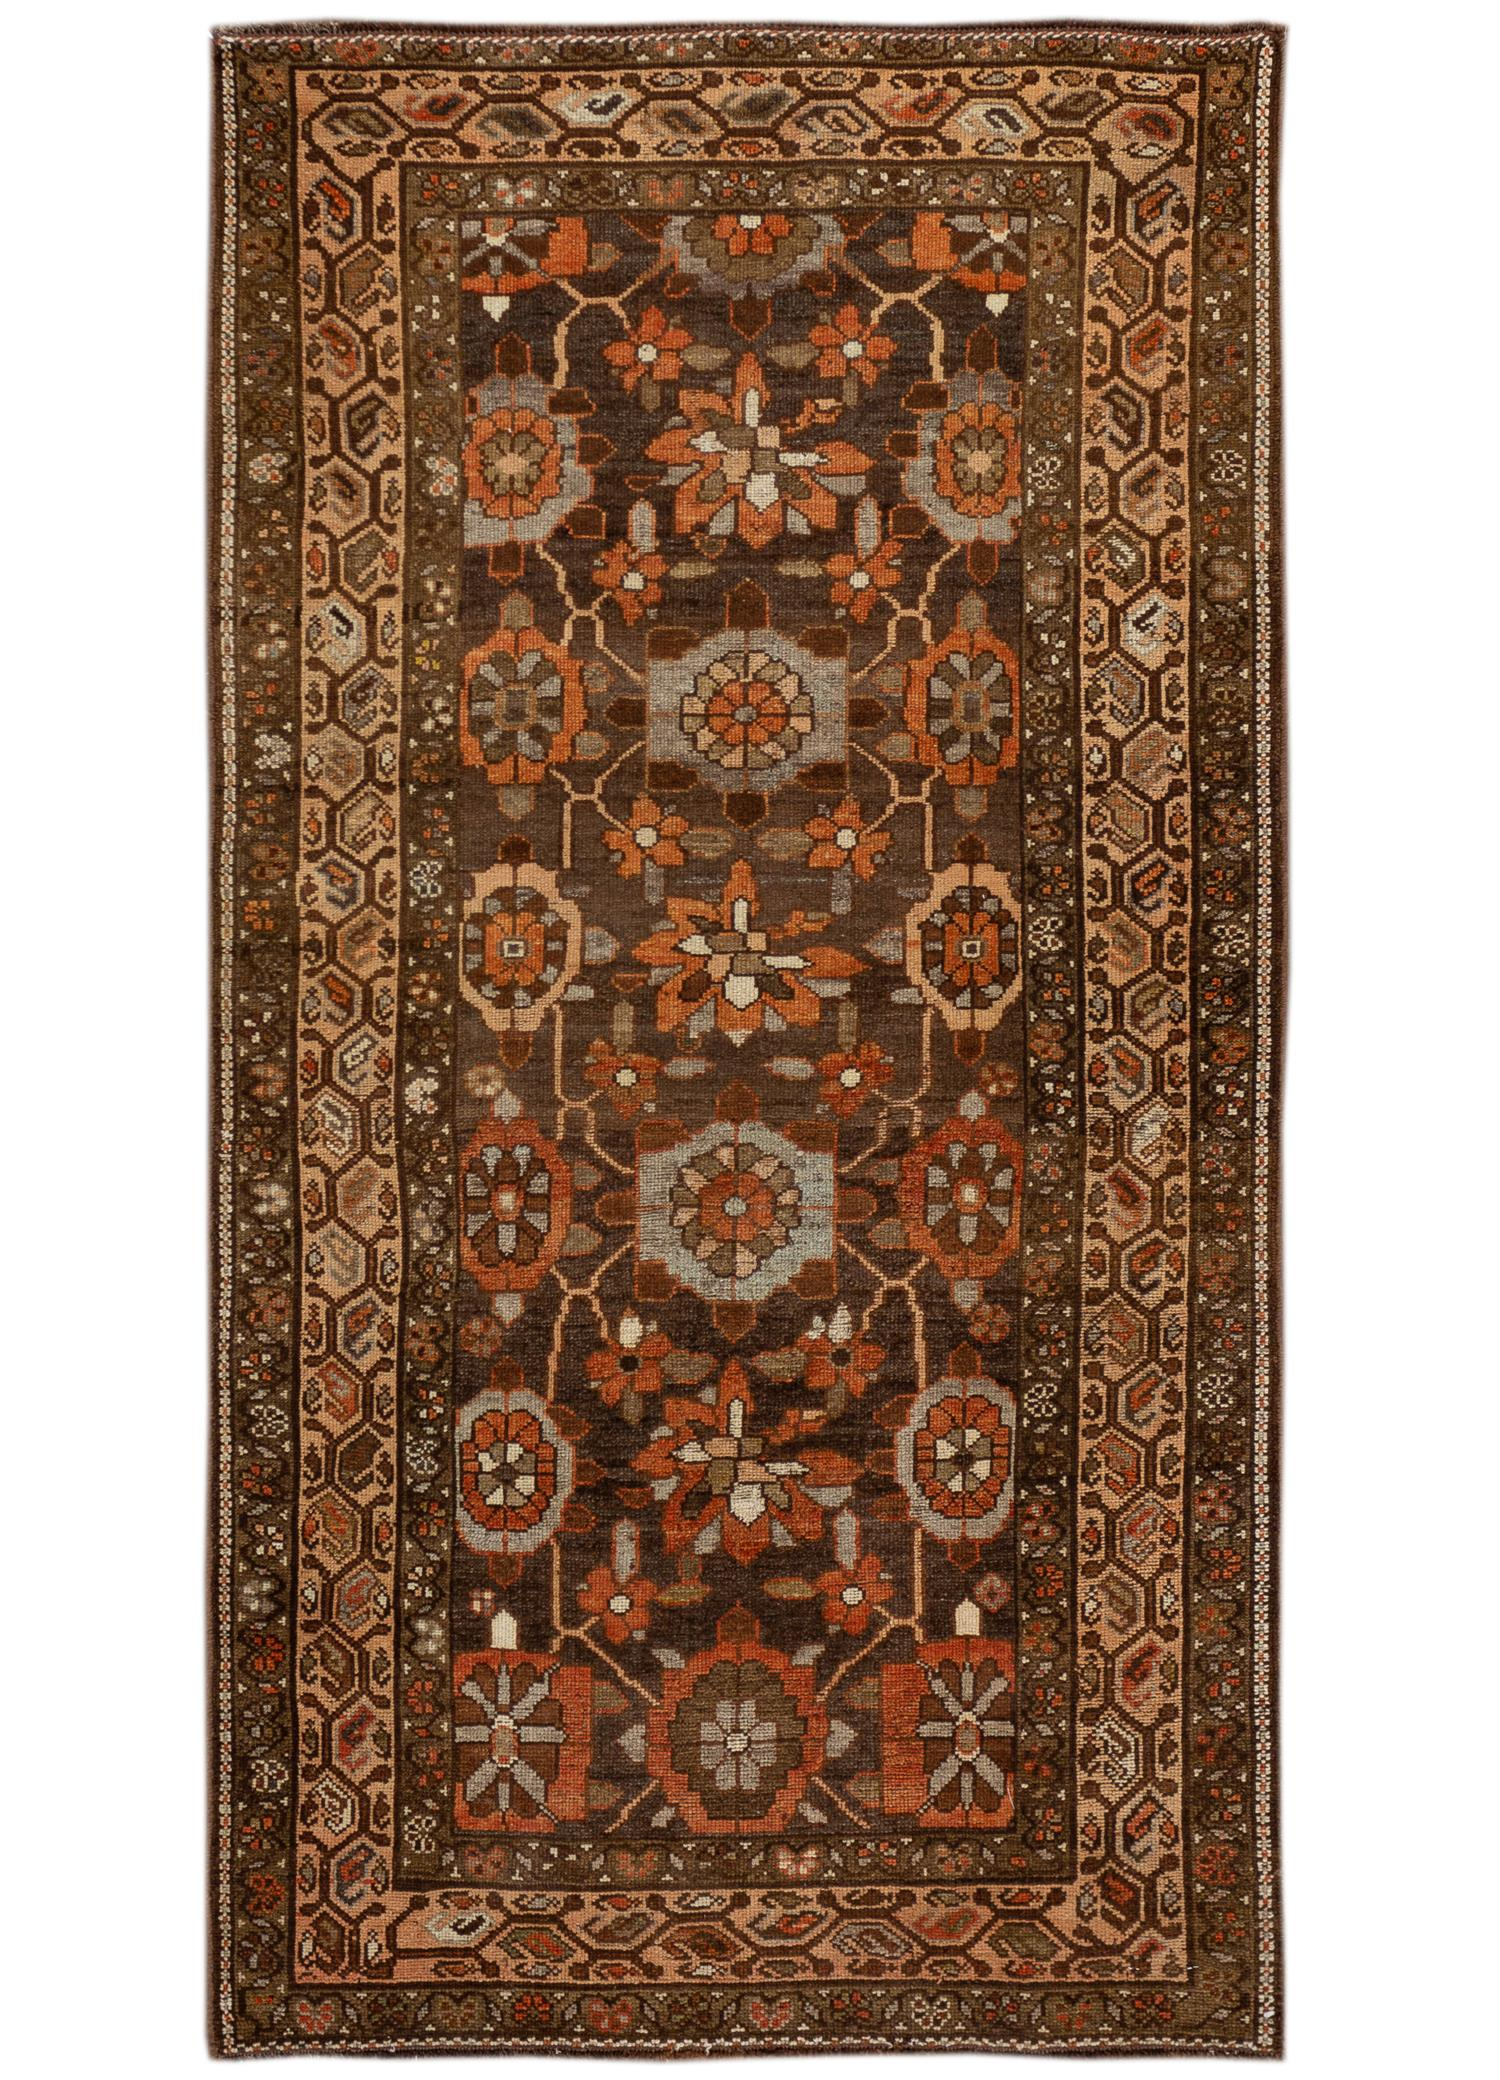 Antique Kurd Rug, #10235266, 4X7